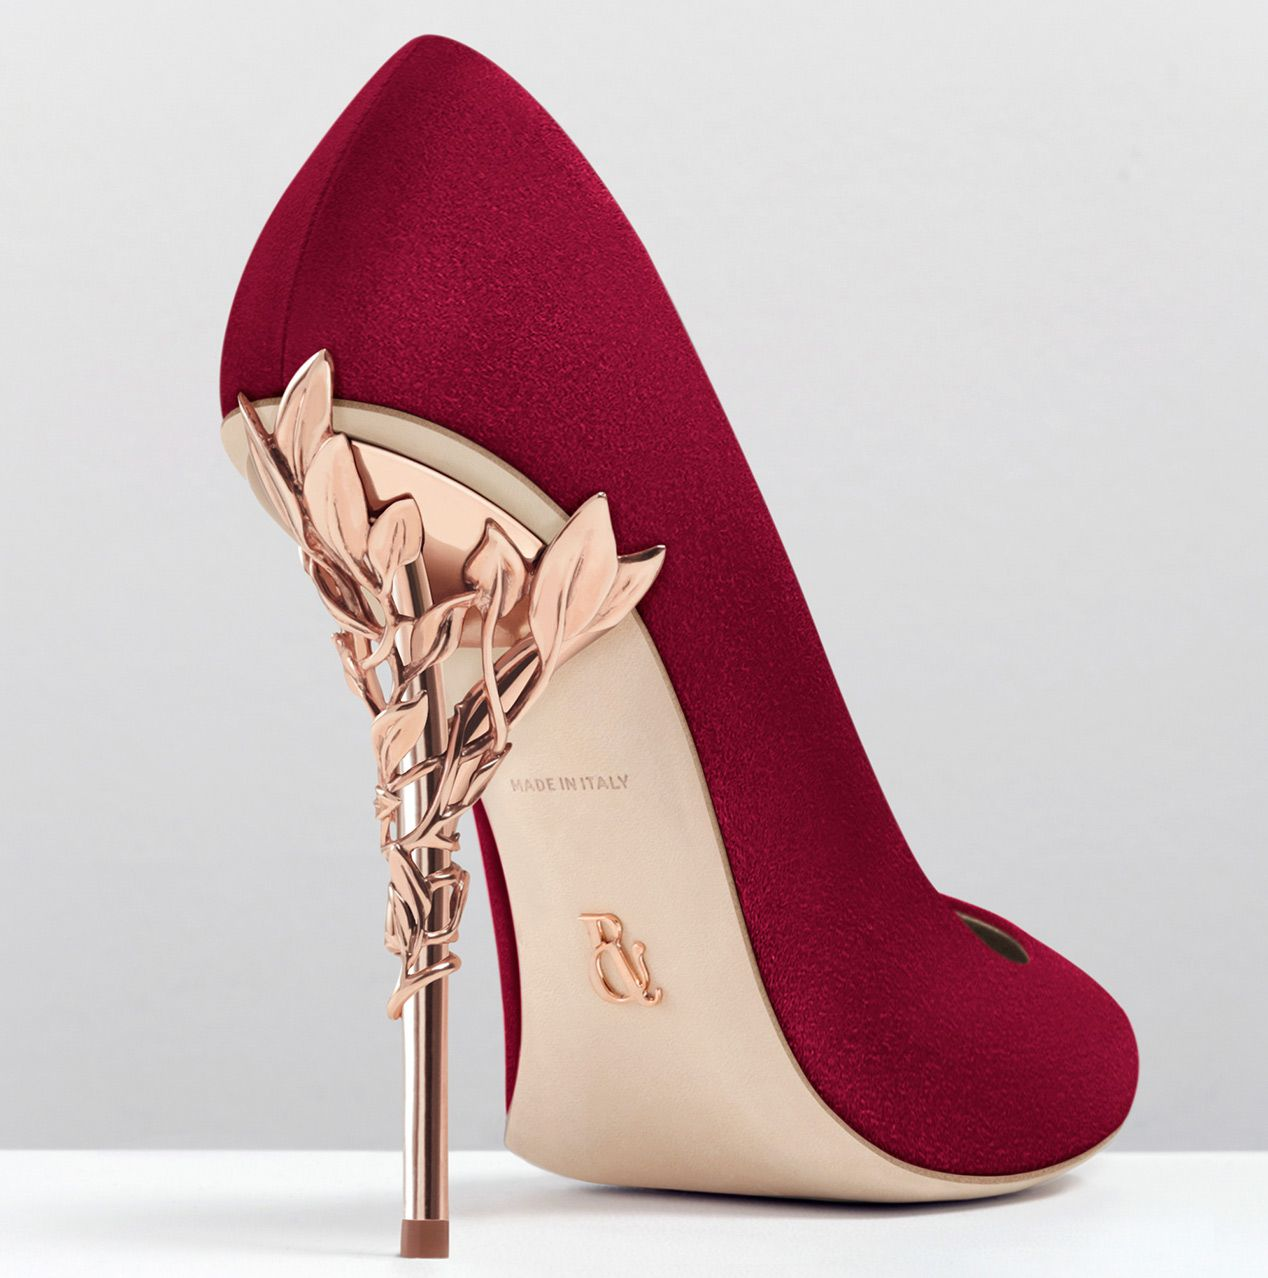 7675c75df5af Fandango colour Suede Rose gold colour leaves 12cm heel Leather outsole  Made in Italy Red Prom